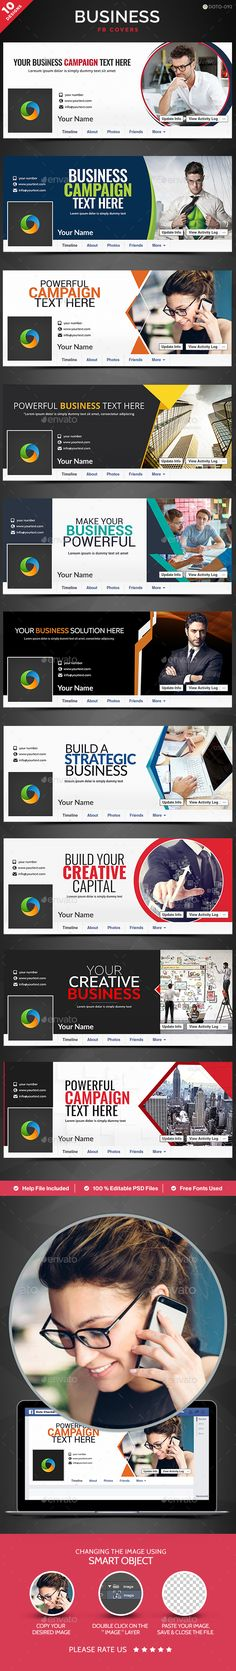 Business Facebook Covers - 10 Designs